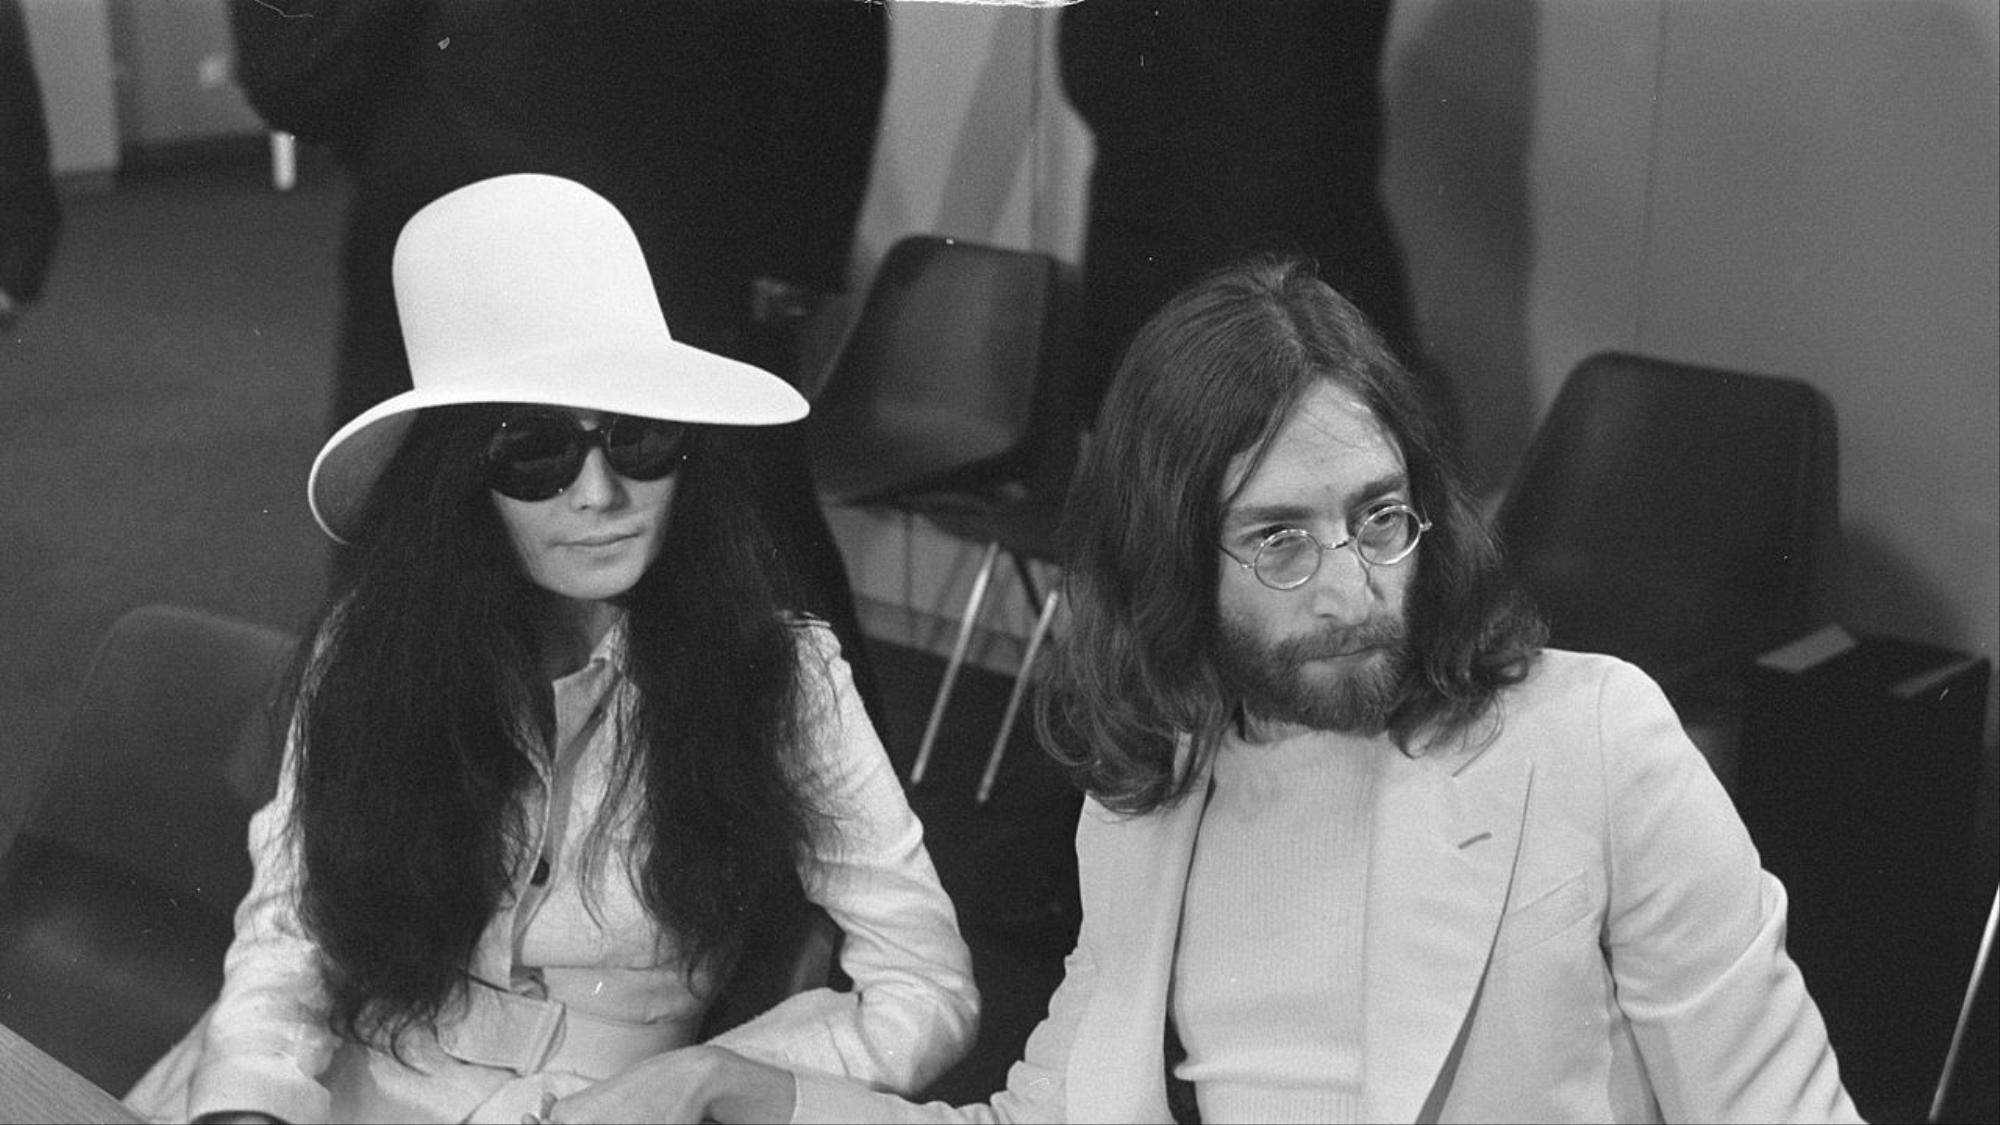 yoko ono might finally get a songwriting credit for john lennon's imagine